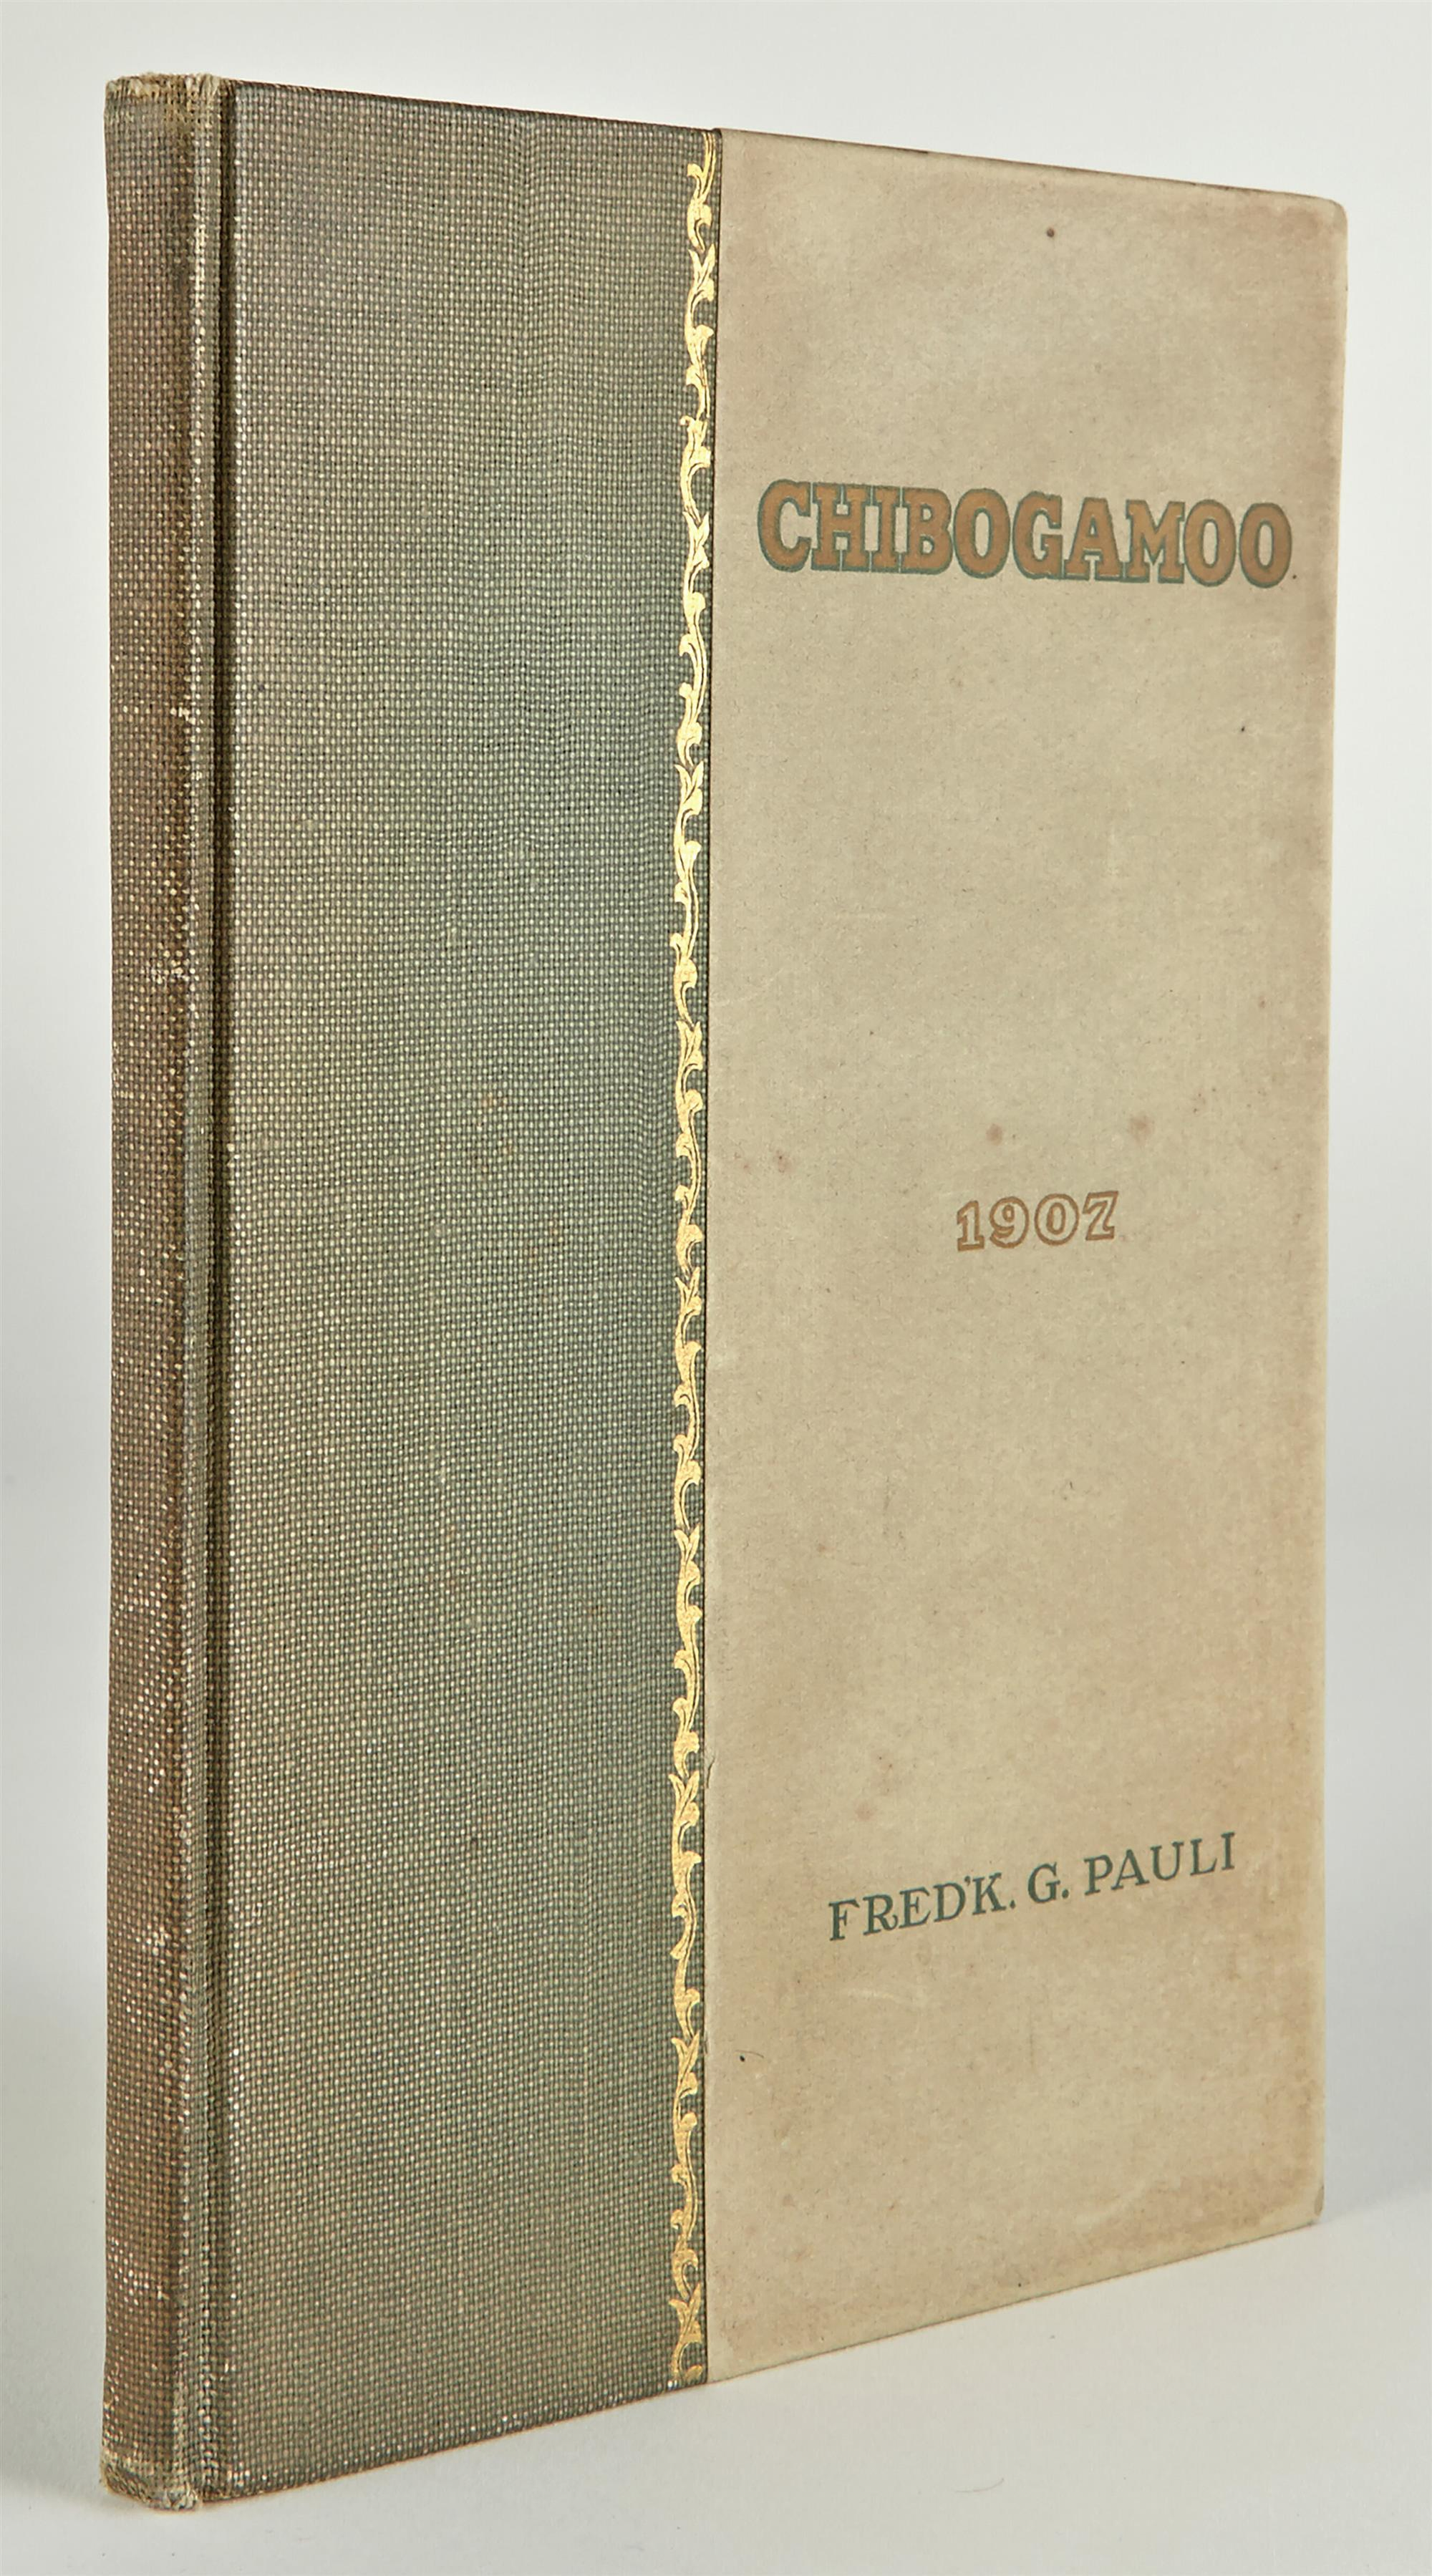 Lot image - [CANADA-FISHING]  PAULI, FREDERICK G. A Record of a Trip through Canadas Wilderness to Lake Chibogamoo and to the Great Lake Mistassini in the Summer of 1906.